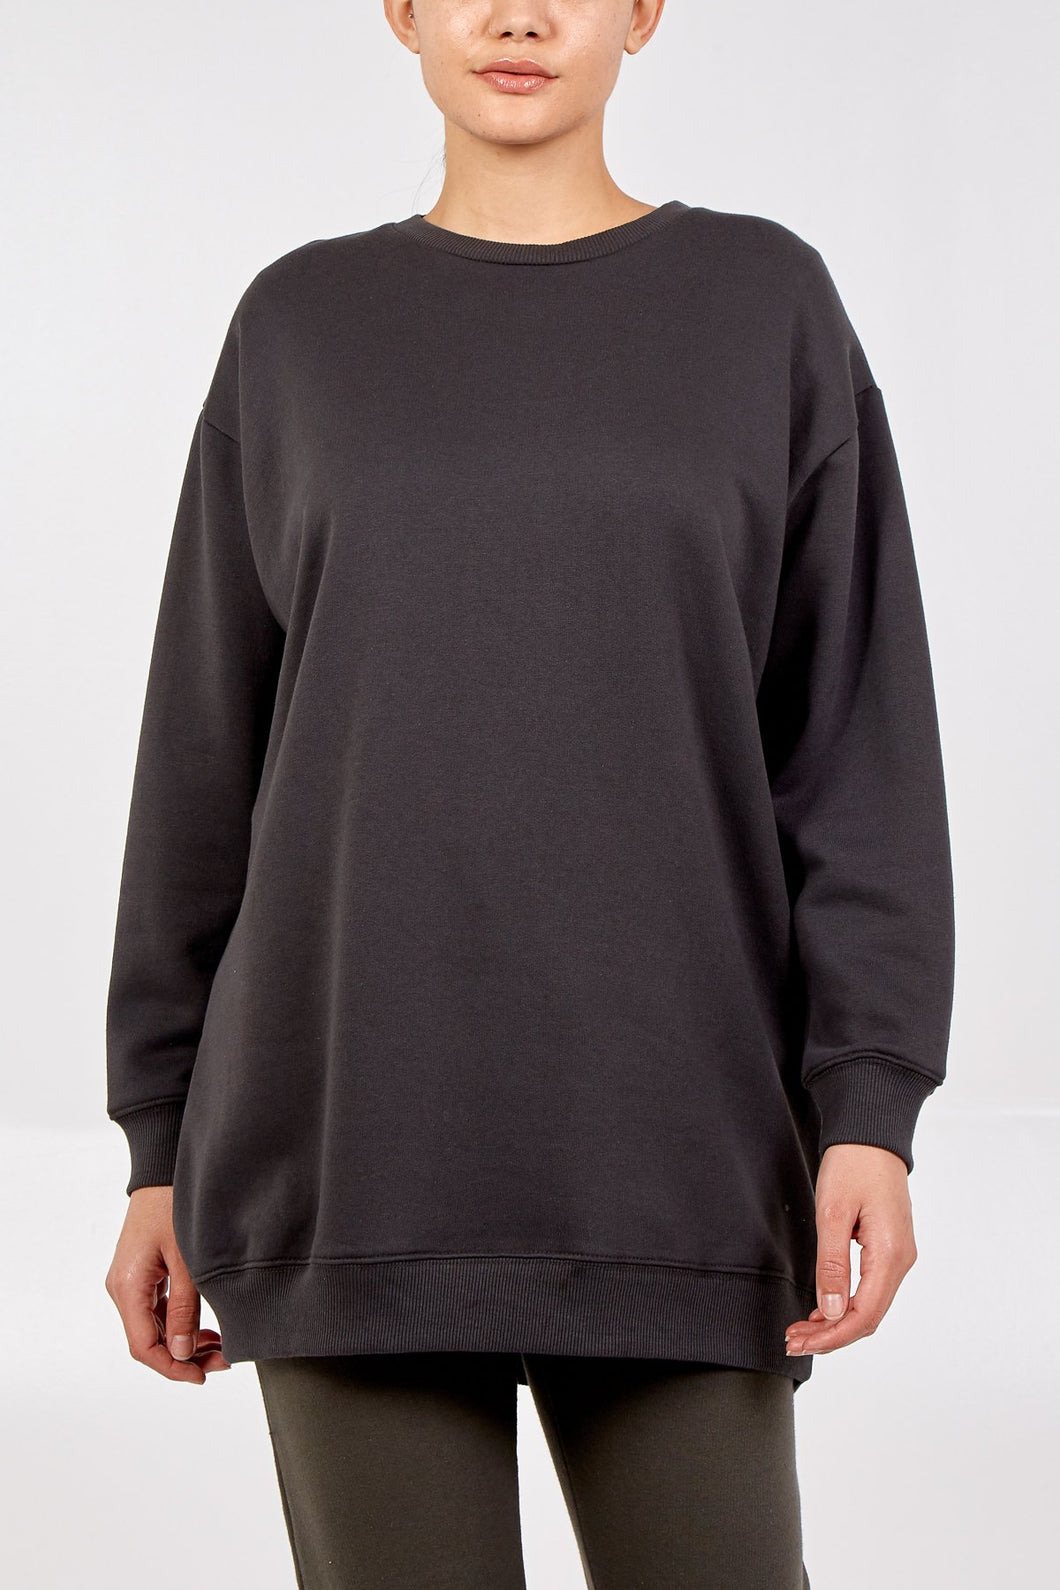 Boxy Sweatshirt - Charcoal